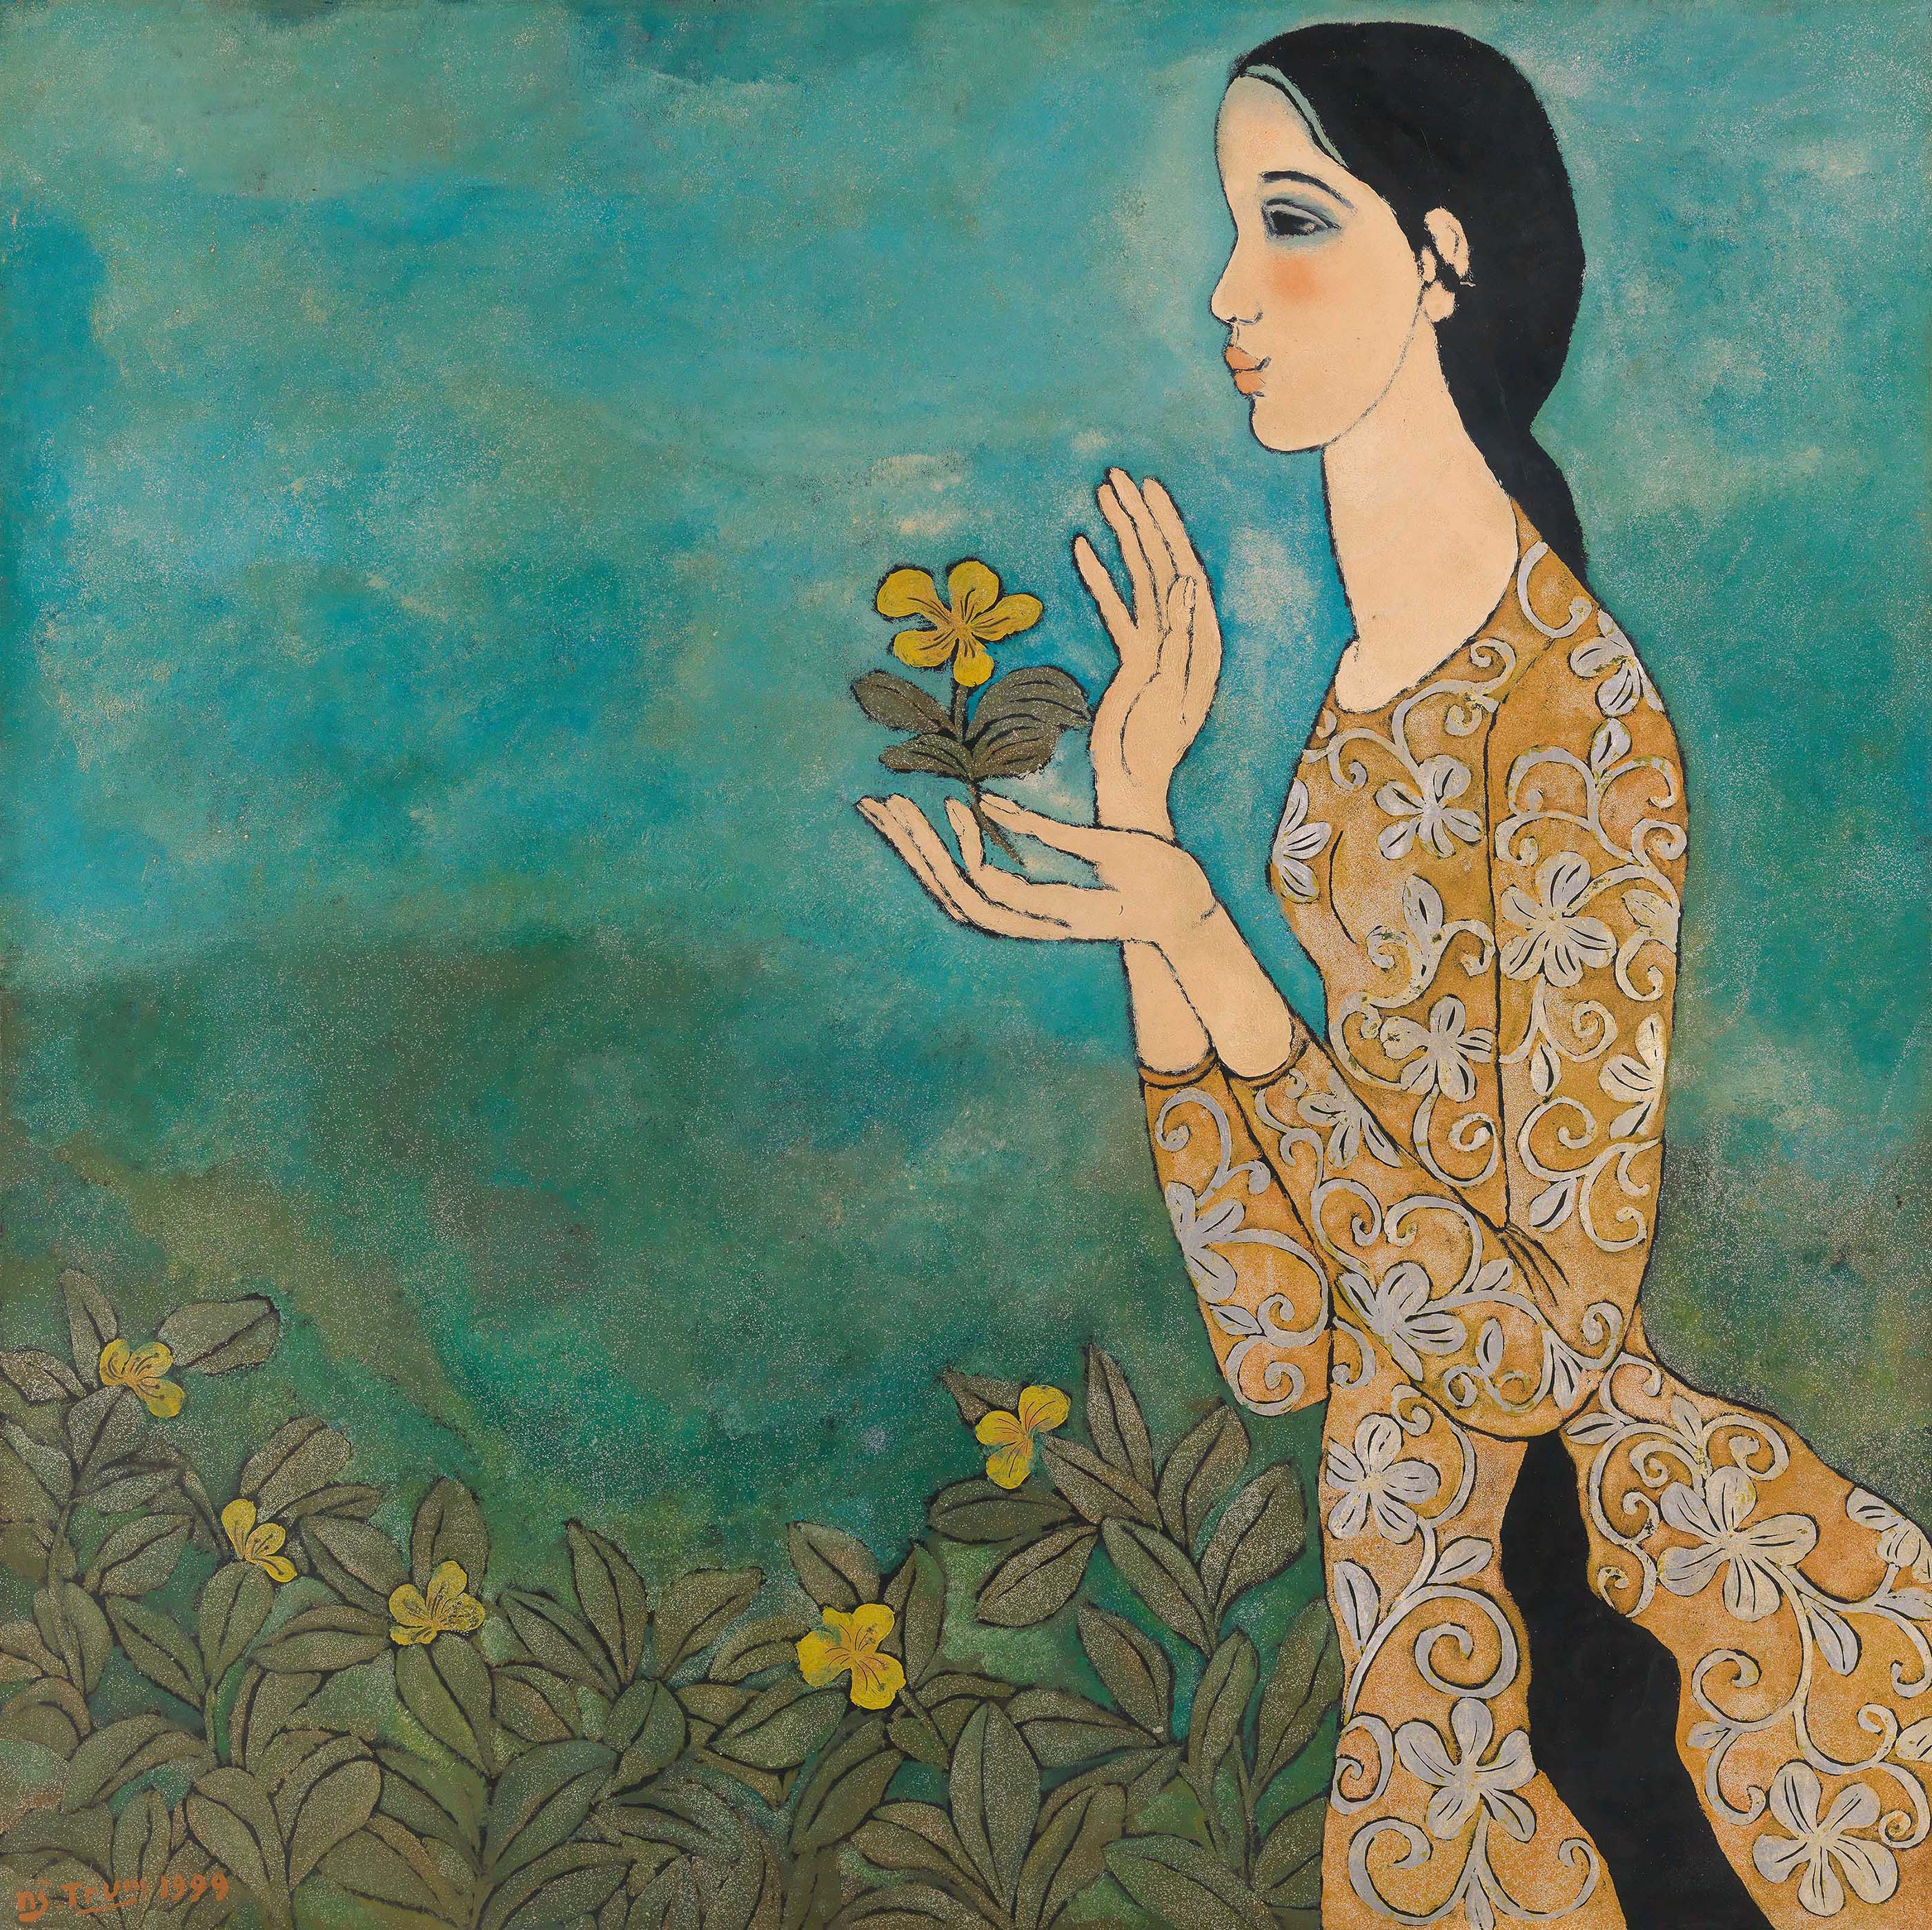 Lady in Ao Dai with a Ngoc Anh Flower in Her Hands